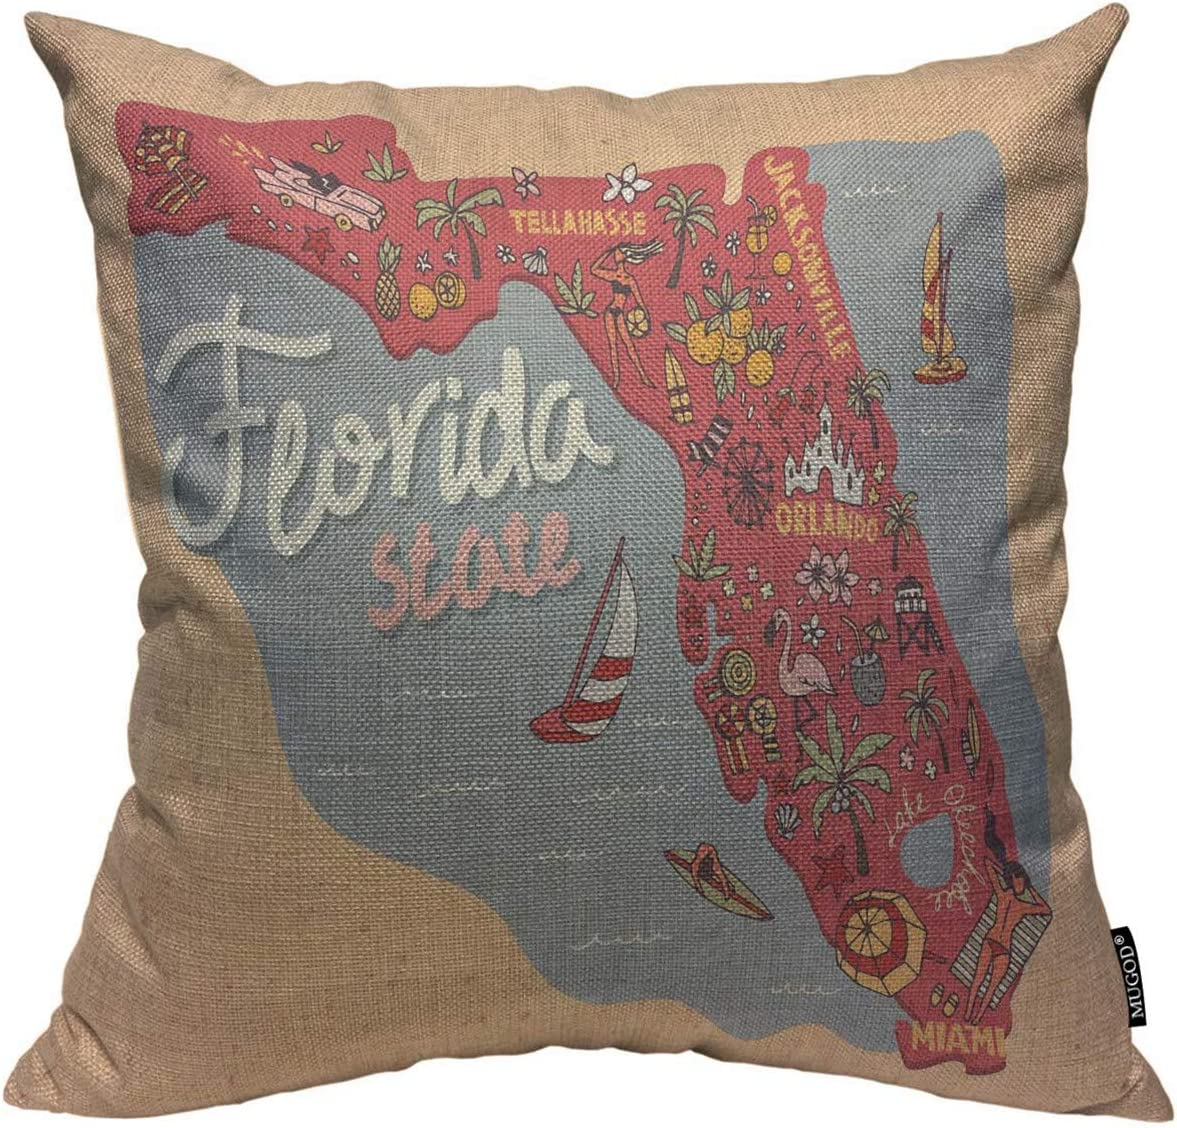 Mugod Florida Map Throw Pillow Cover Travel and Attractions Map of The State of USA Florida Decorative Square Pillow Case for Home Bedroom Living Room Cushion Cover 18x18 Inch